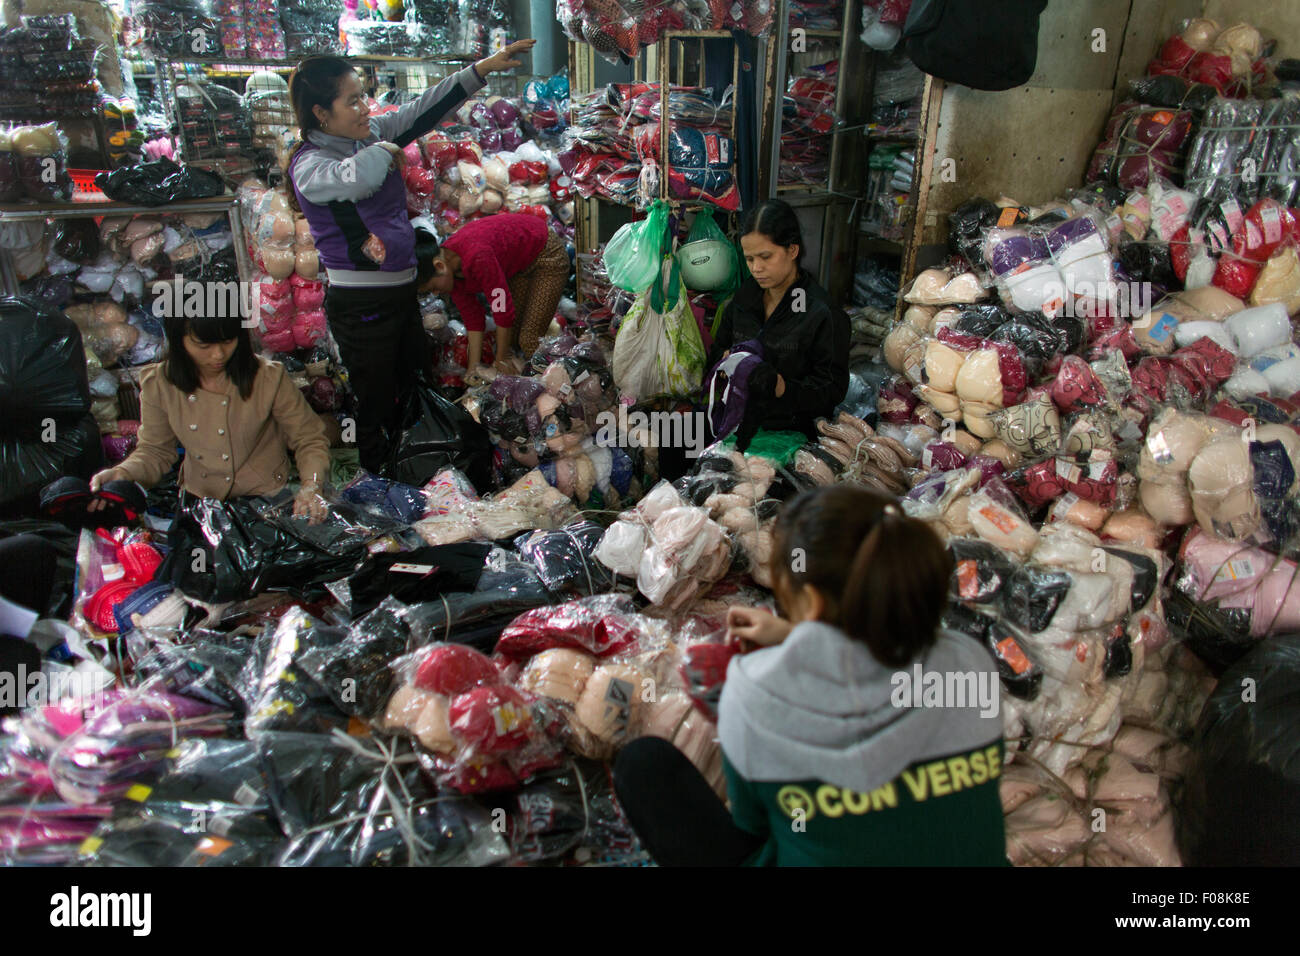 whole sale clothing market in Hanoi - Stock Image